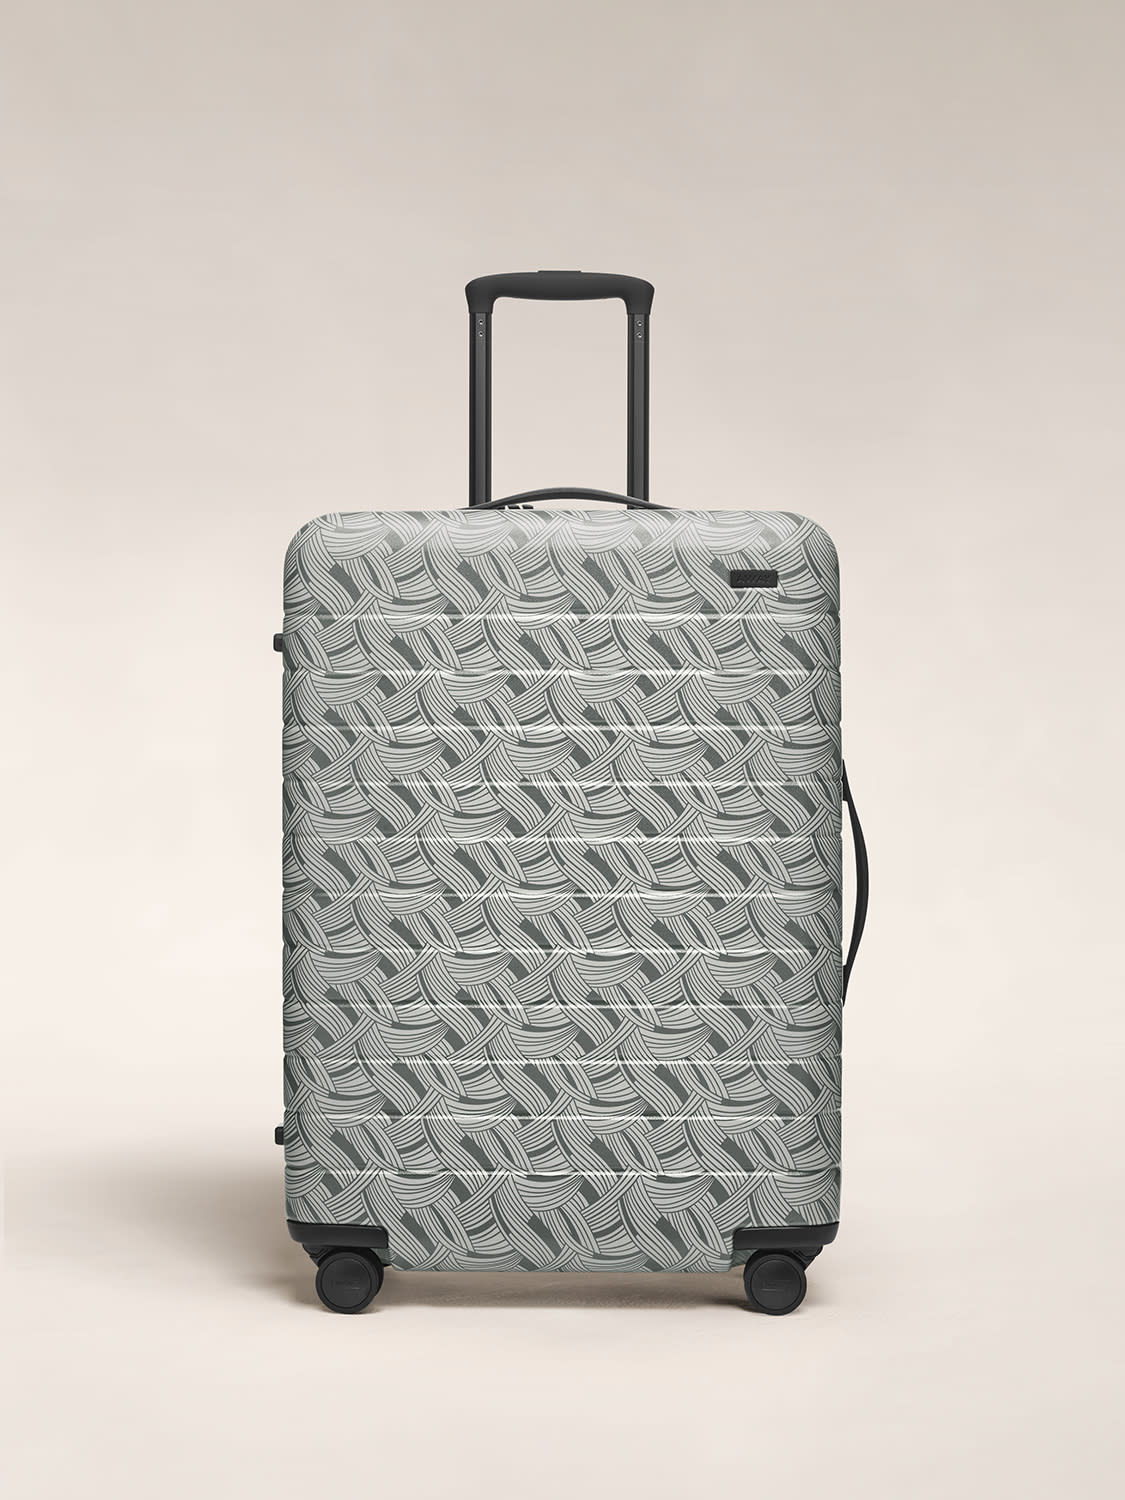 Front view of the Away hardside luggage in Medium in the color Light-Swirl